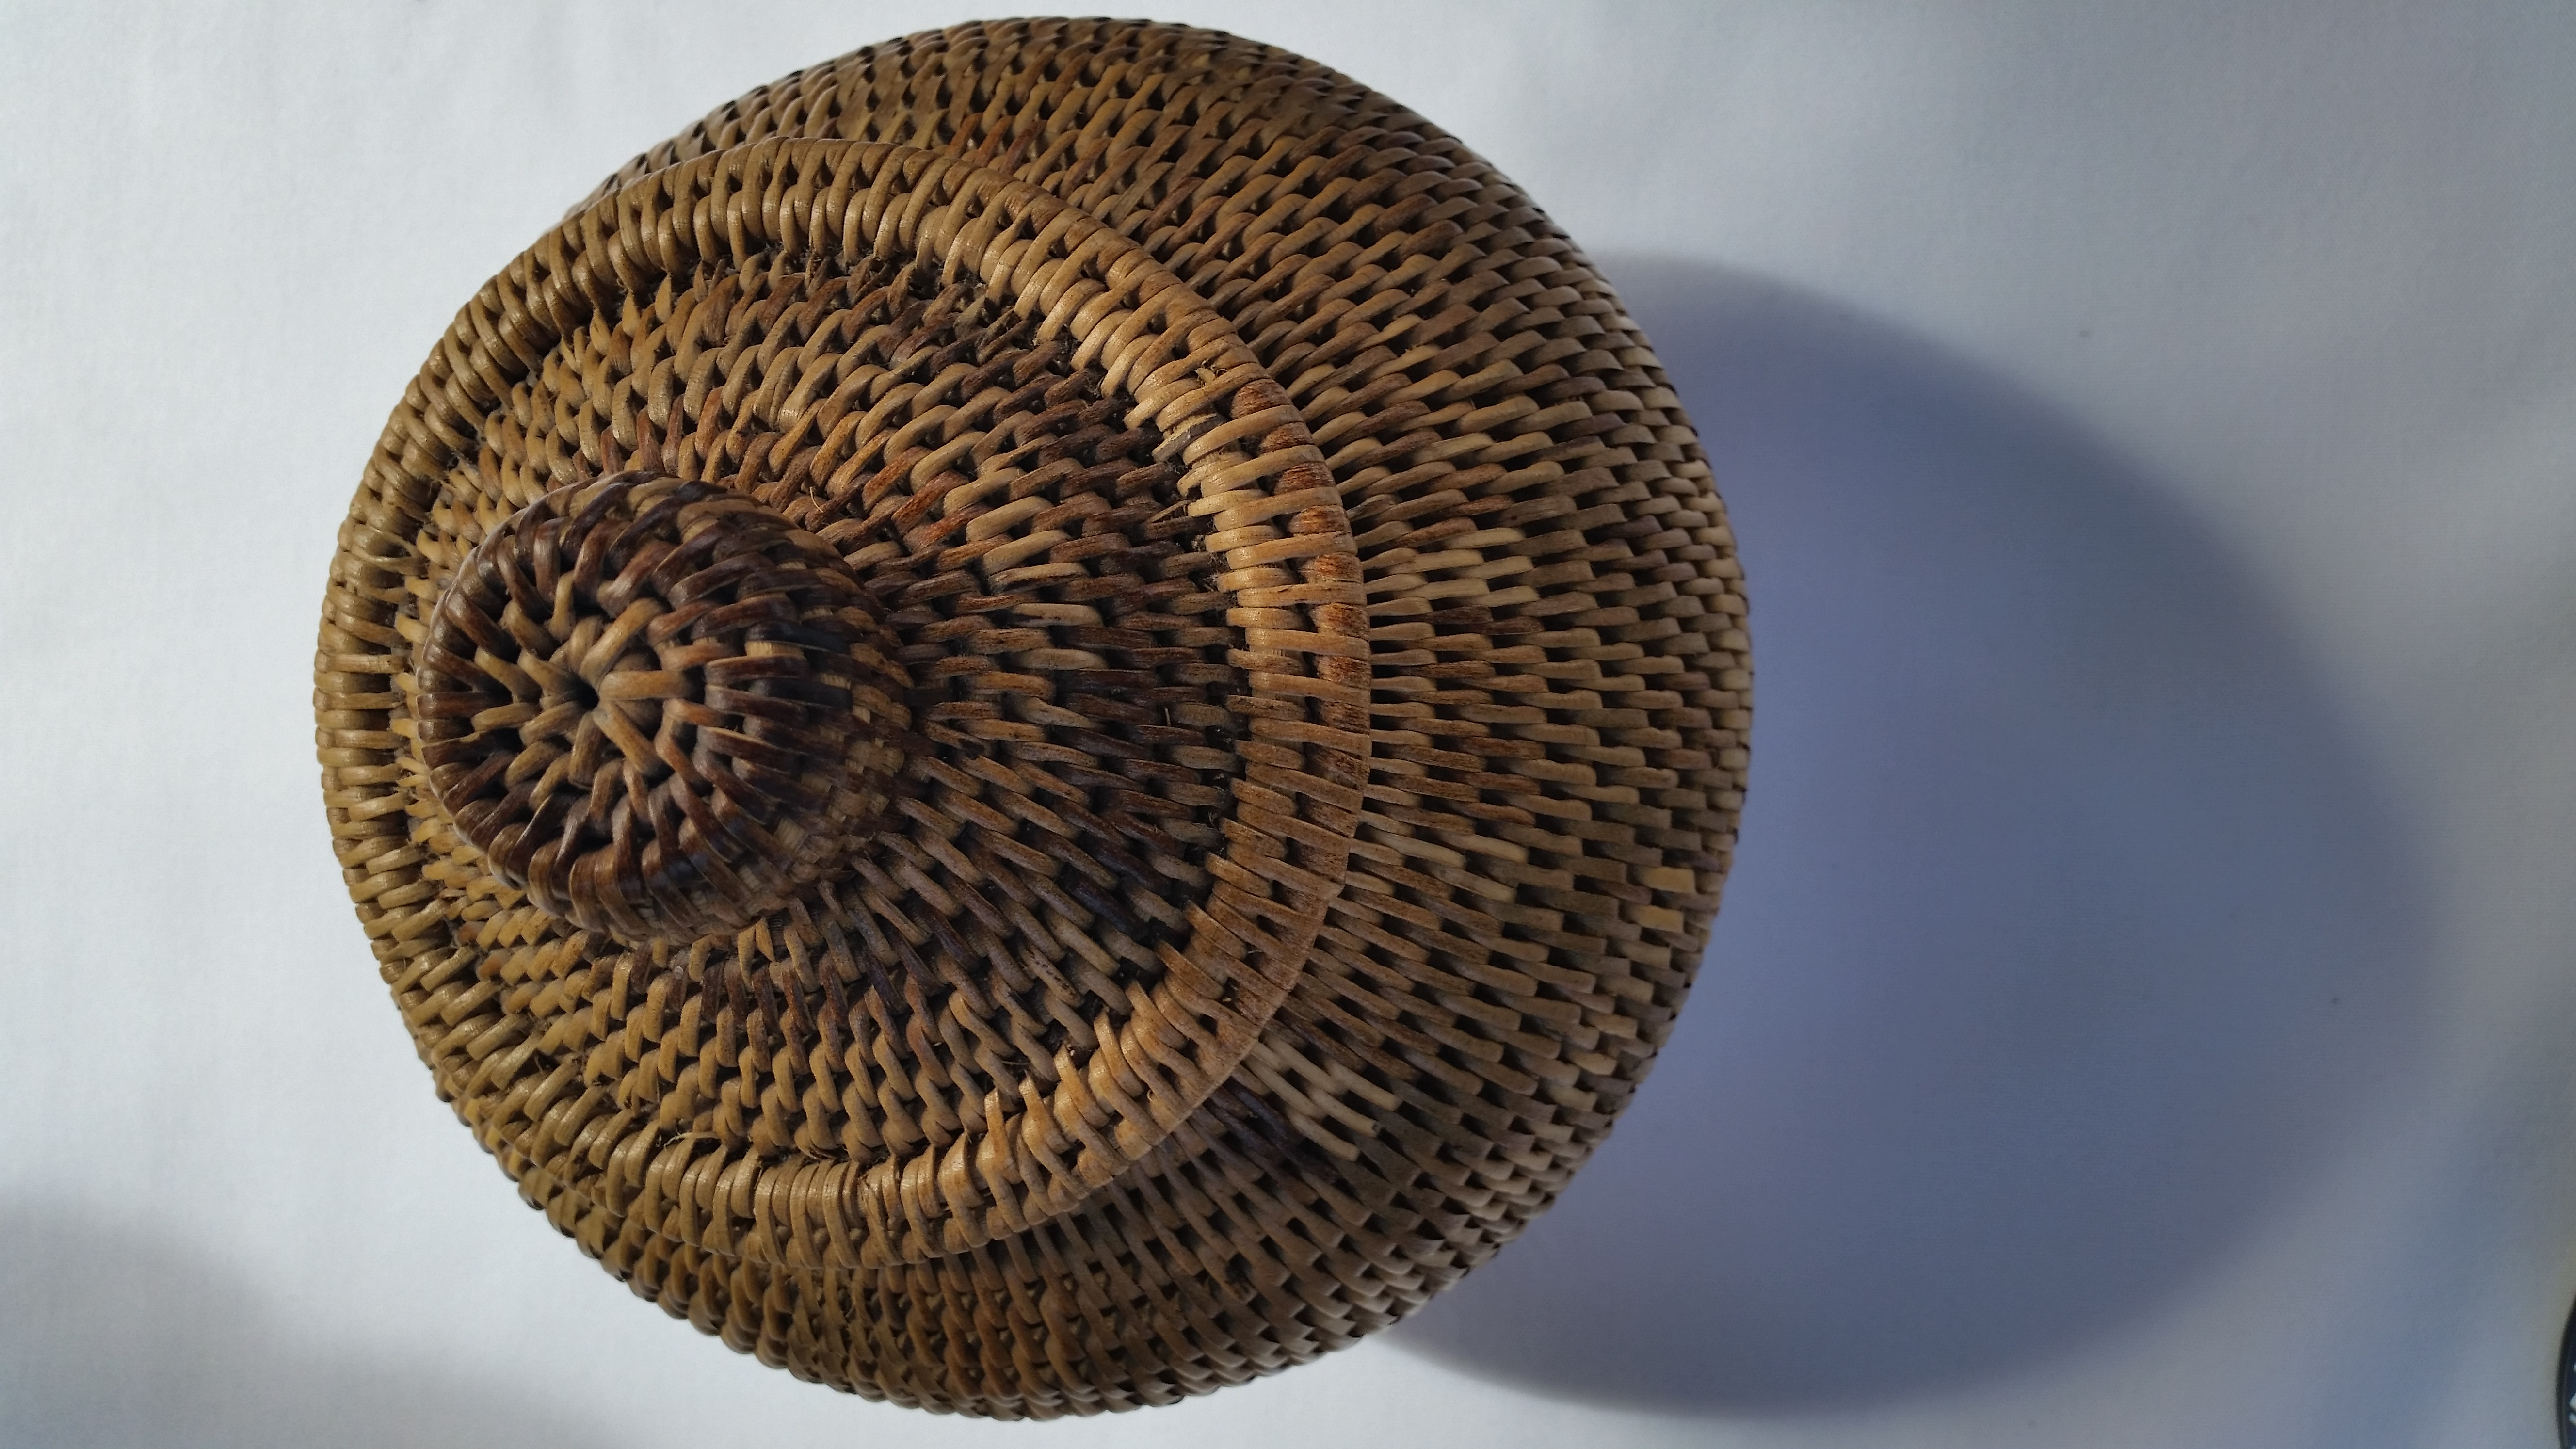 Basket Weaving Supplies Canberra : Solomon islands welcomes australians to sample its fare